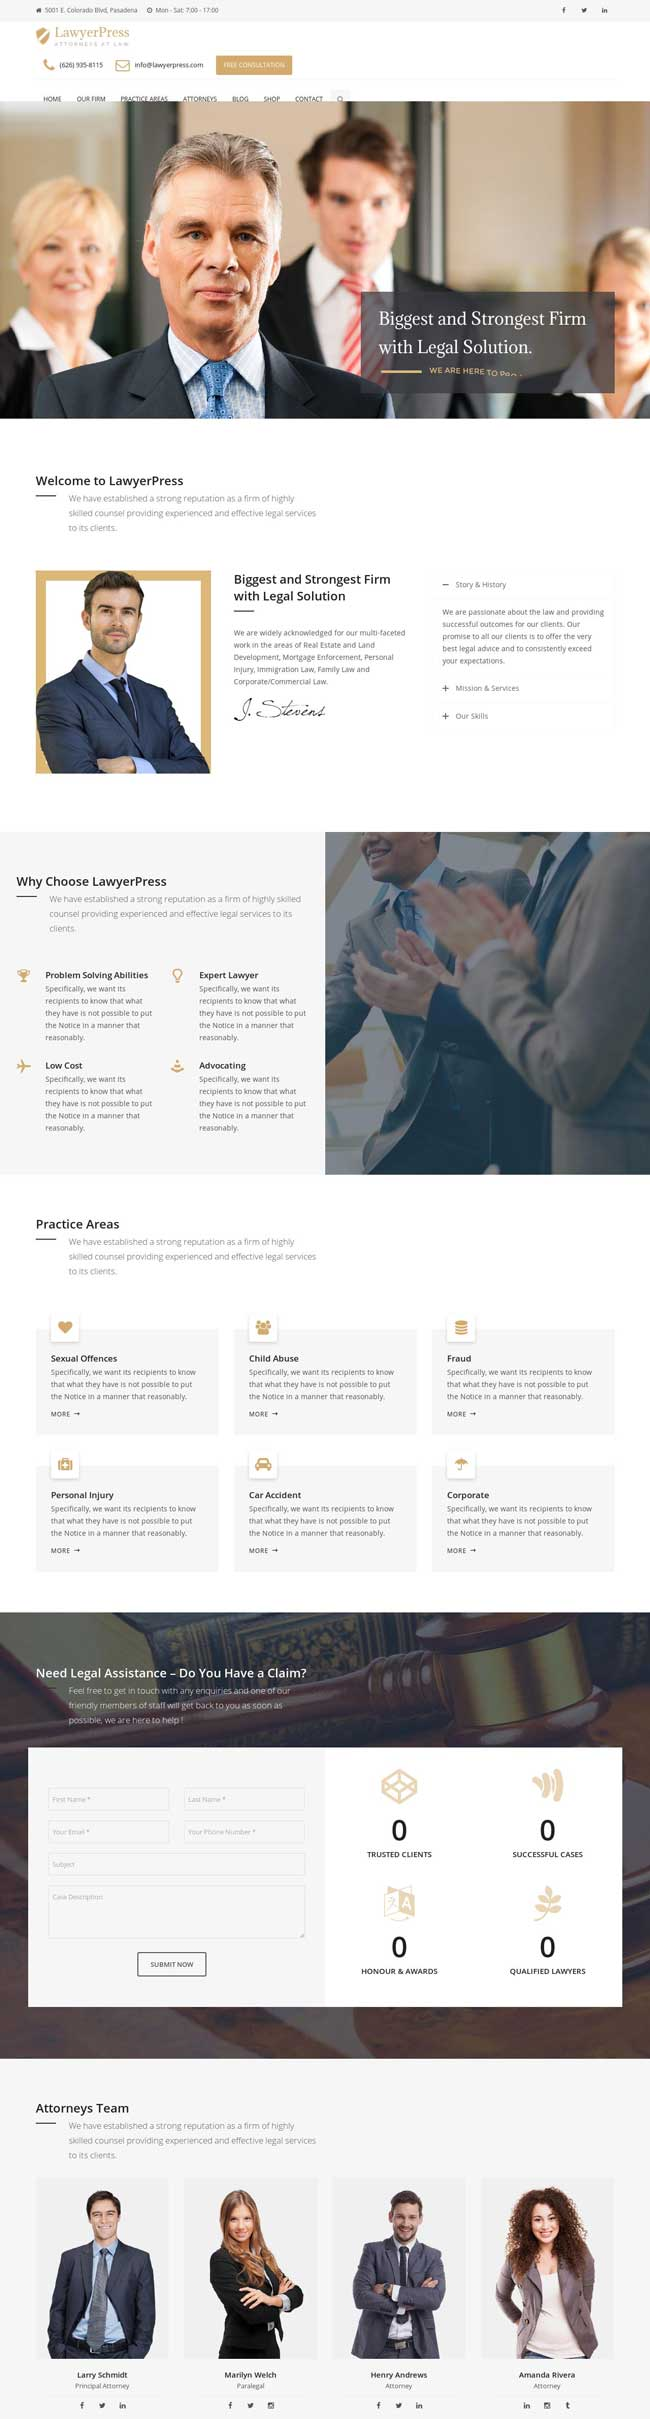 LawyerPress-Lawyers-Attorneys-WordPress-Theme